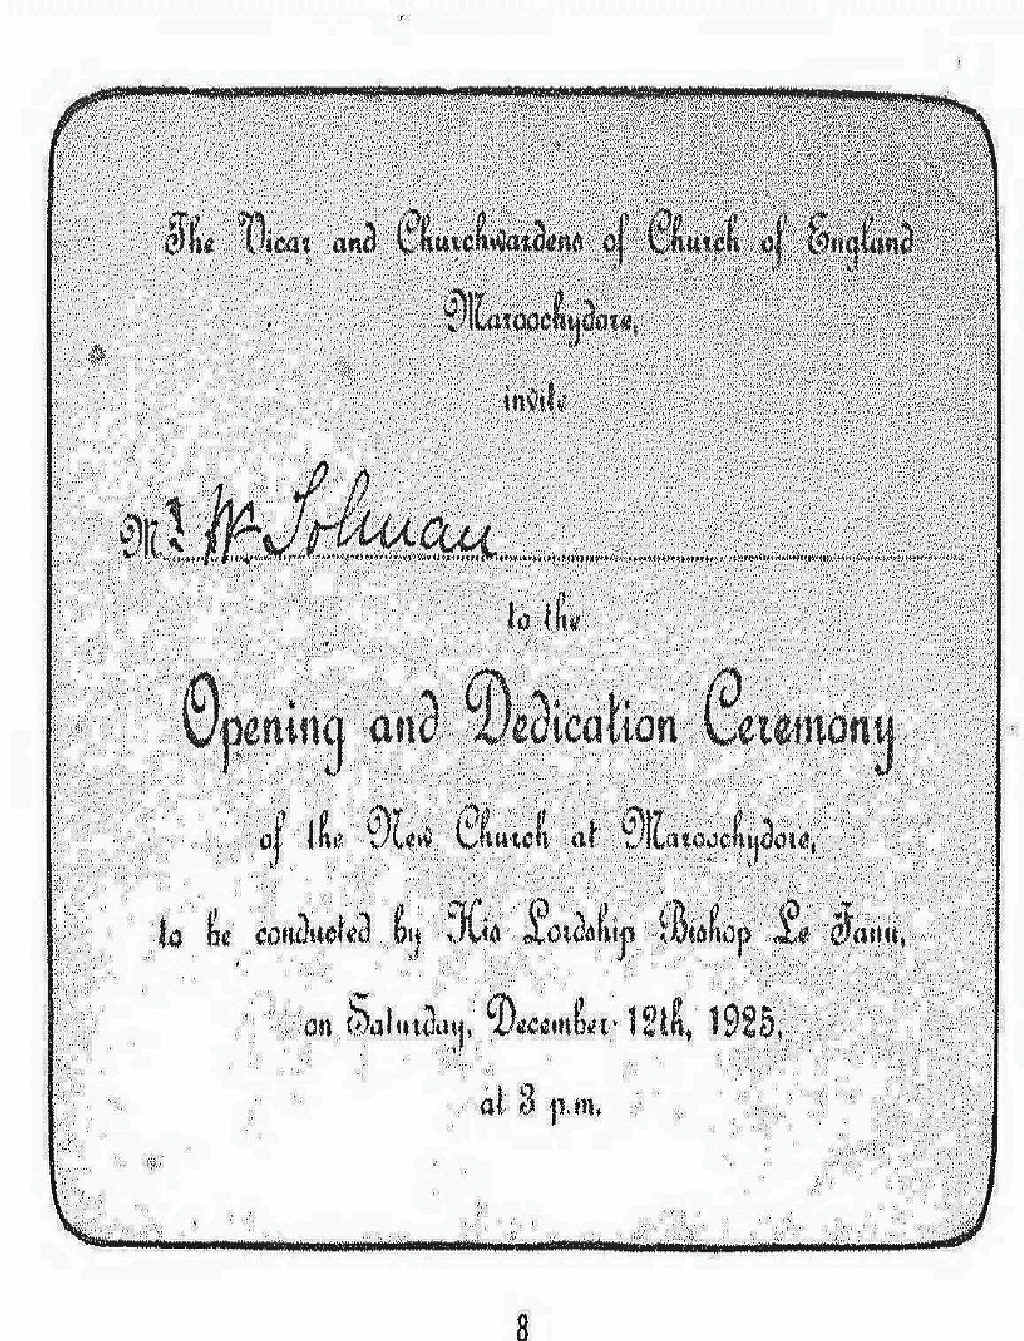 An inviation to the opening and dedication ceremony of the new church in 1925.